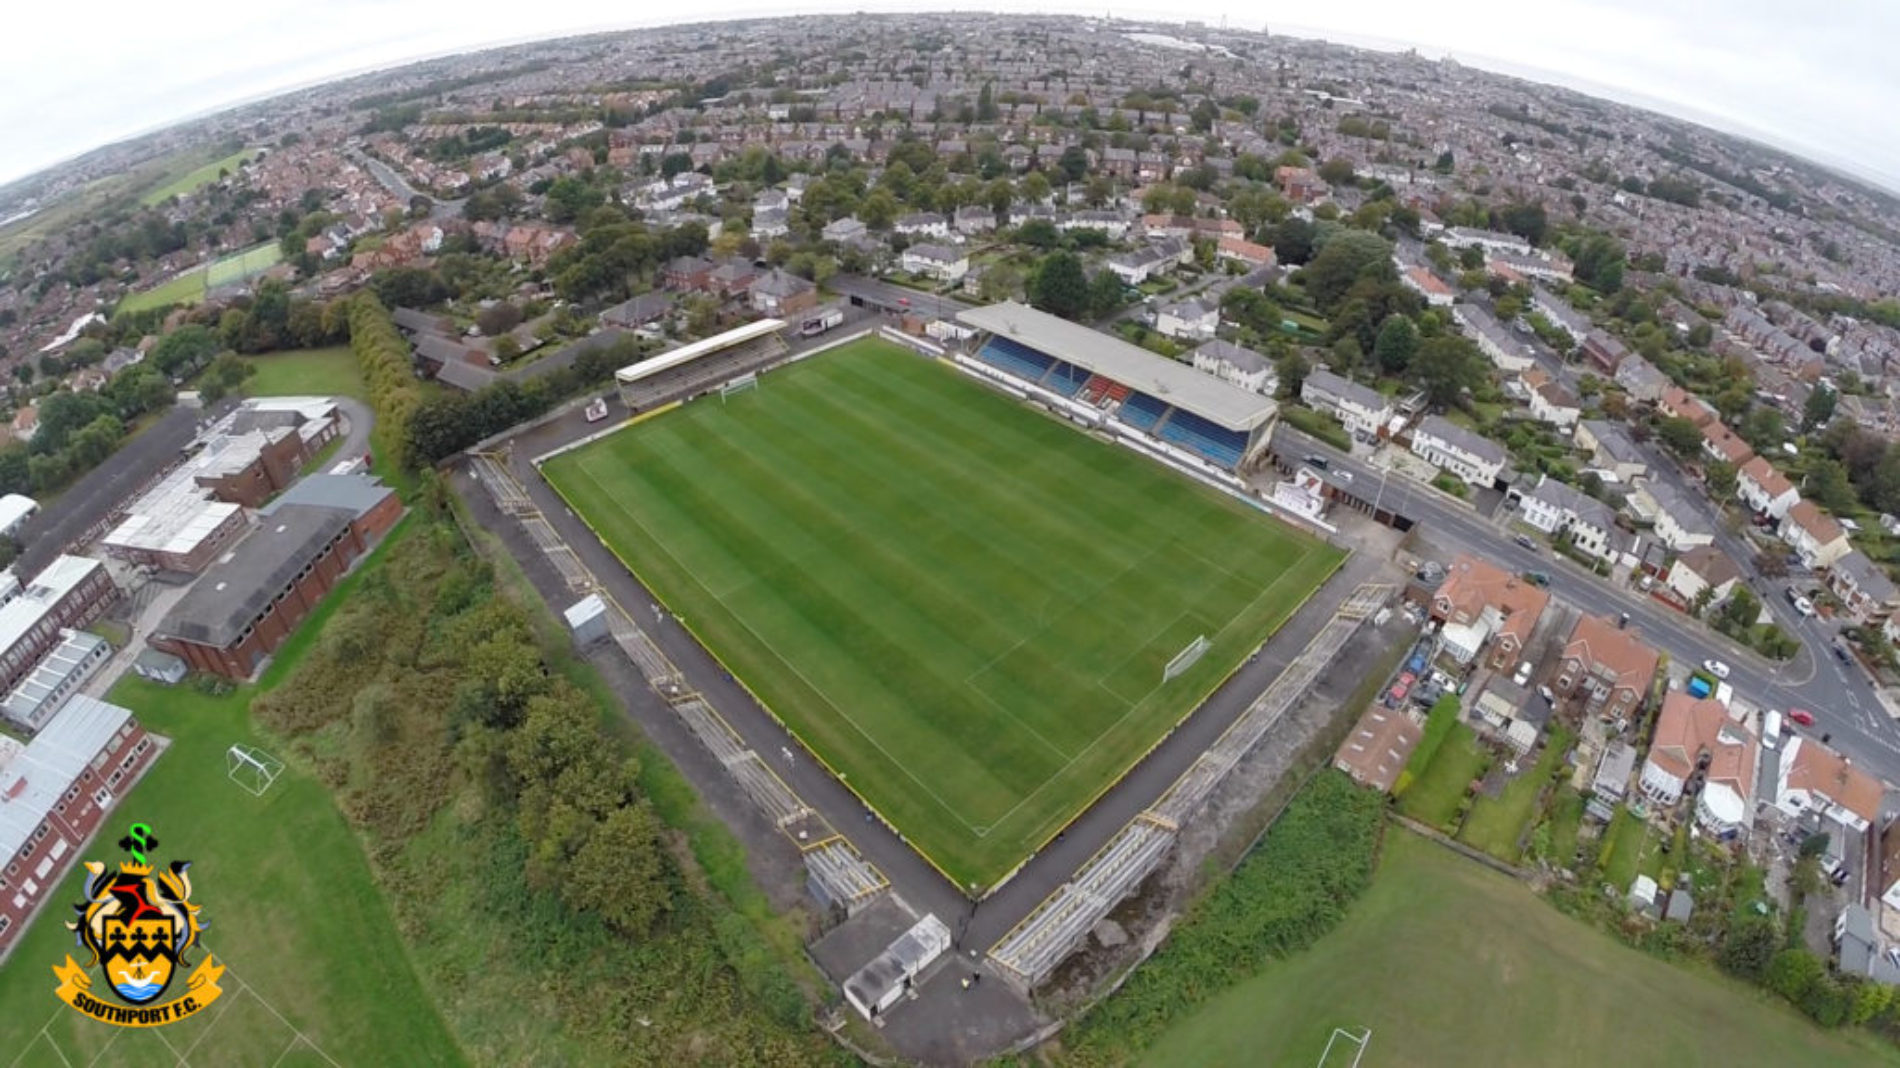 Southport host Burscoughthis evening at The Merseyrail Community Stadium in the clubÂ's penultimate friendly ahead of the new season. Kick off 7.45pm.    Only the Blowick End and Blowick side of the Main Stand will be open for this fixture. Segregation will not be in place and both home and away...